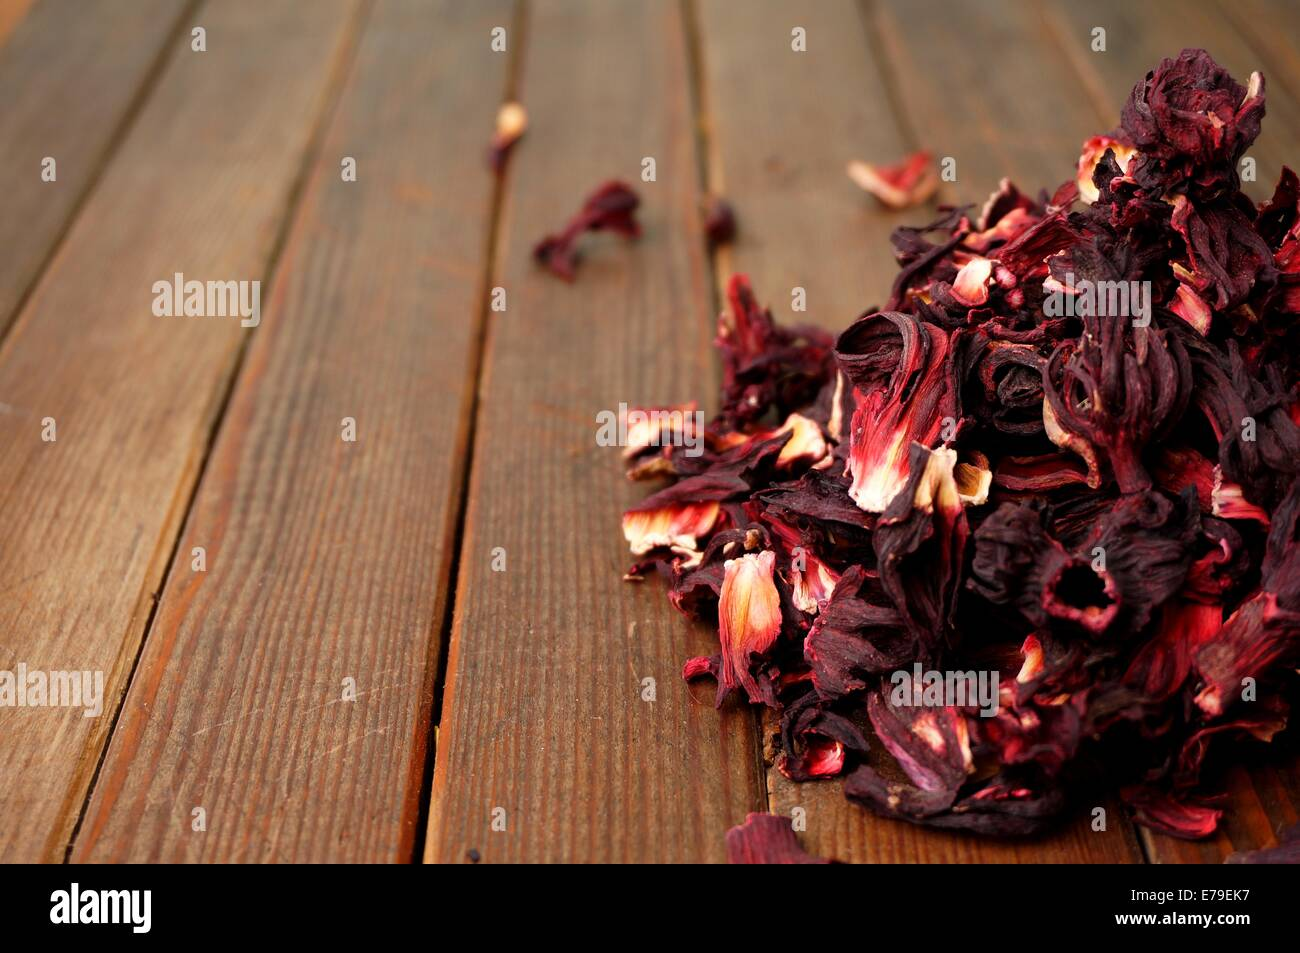 Dried hibiscus flower great for a warm cup of tea stock photo dried hibiscus flower great for a warm cup of tea izmirmasajfo Images